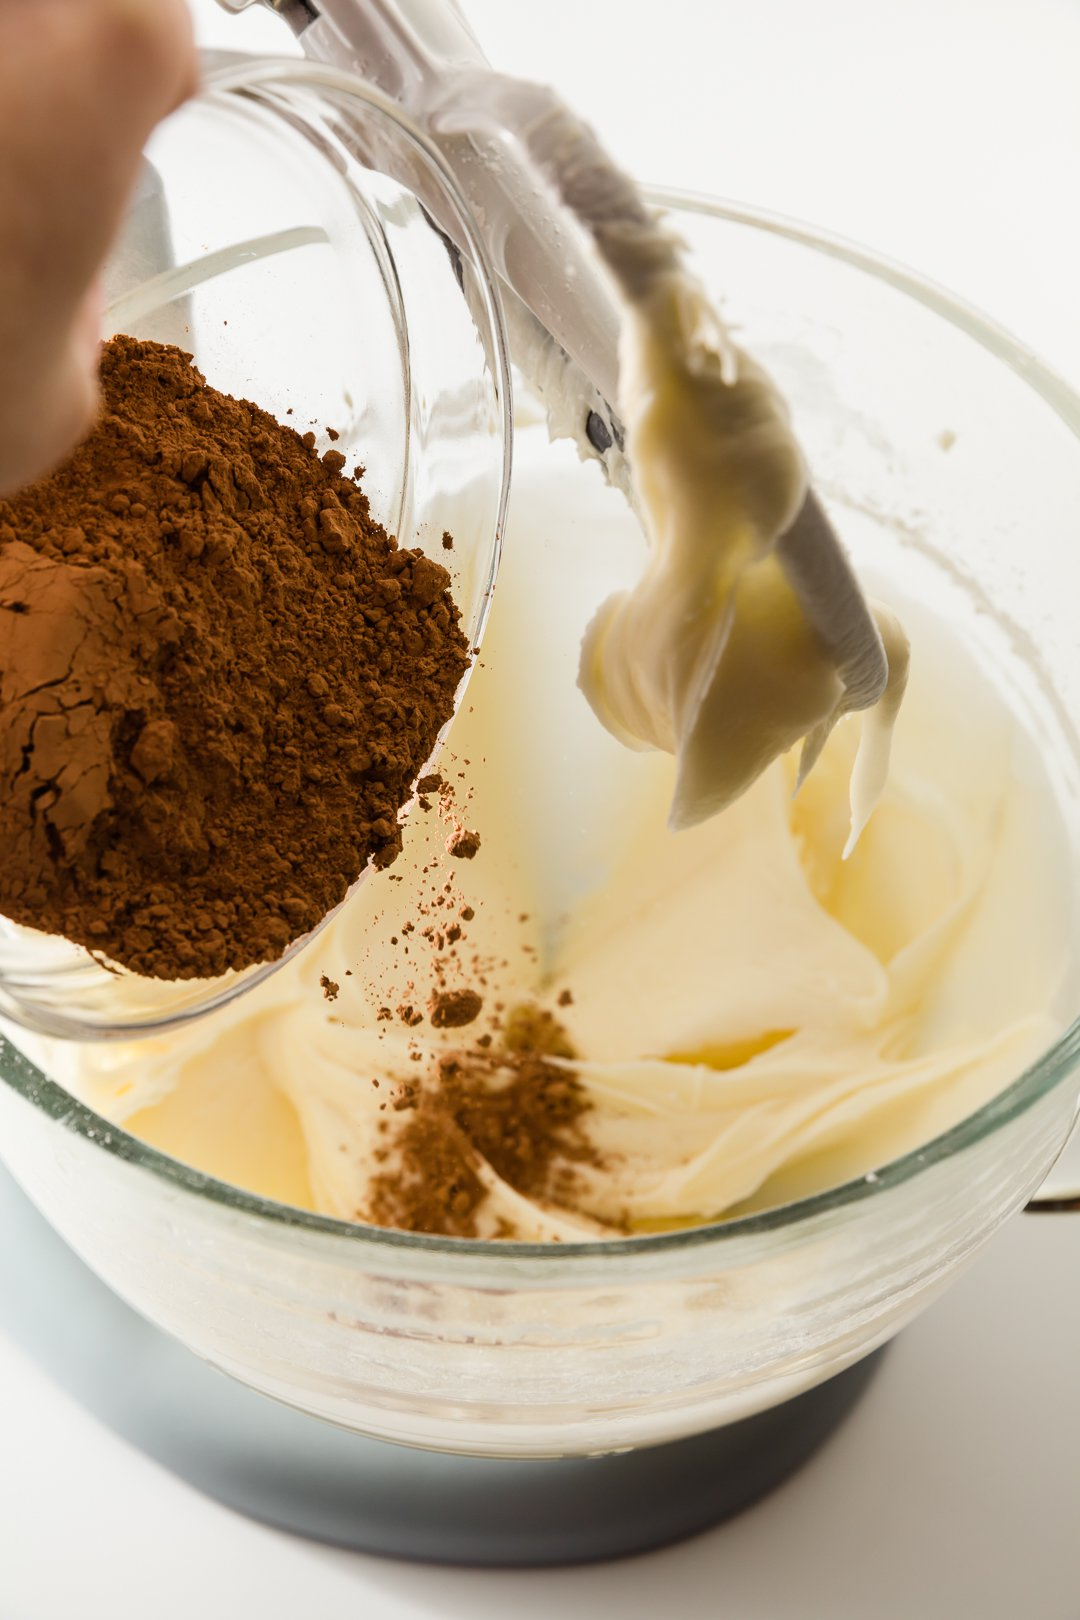 Adding cocoa powder to chocolate cream cheese frosting